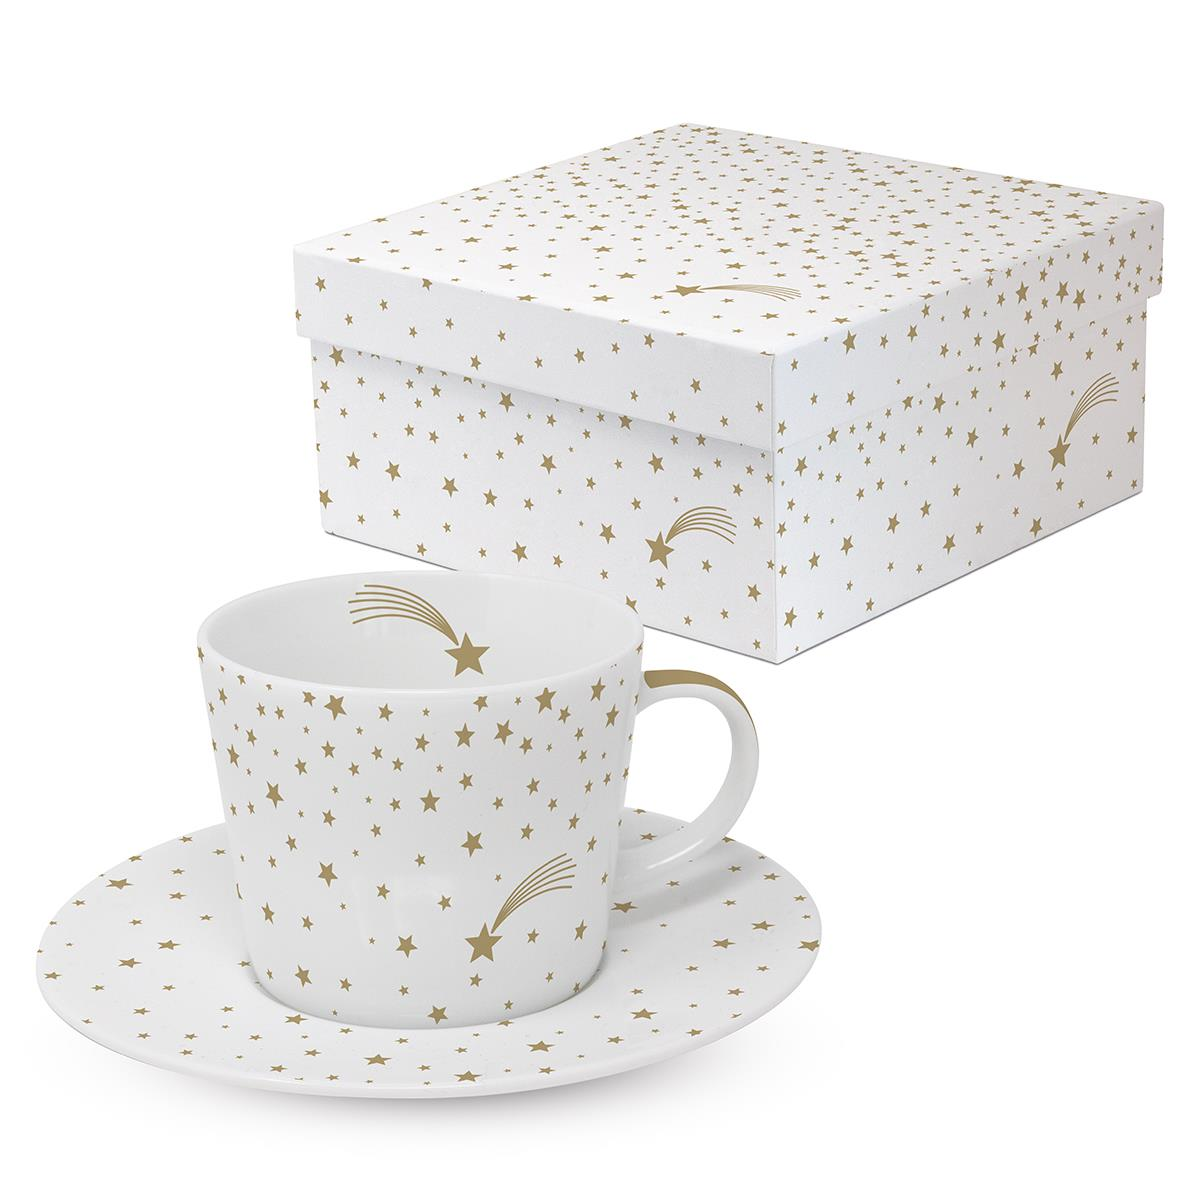 Shooting Star With Gold Design Coffee Cup Saucer Set Gift Boxed By Ppd Ebay